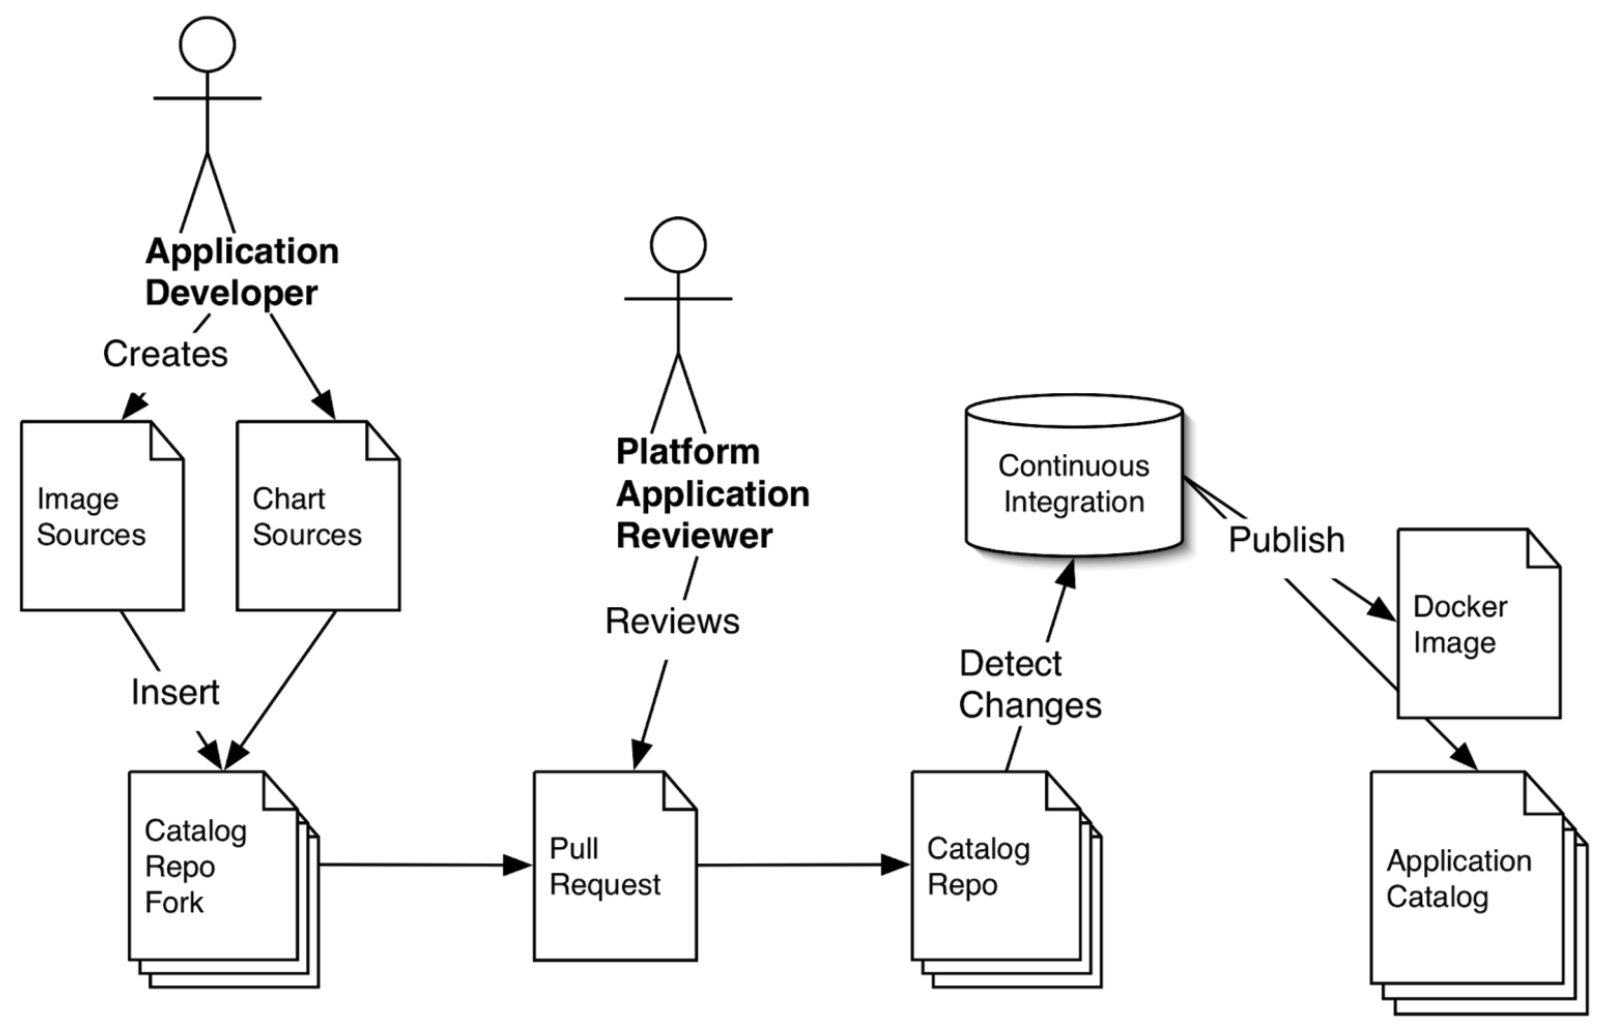 The SLATE Application Review Process begins with the application developer adding a Helm chart and any necessary application image sources to a copy of the application catalog, and submitting the changes for review via pull request. A platform application reviewer examines the changes, and if they meet the required guidelines commits them permanently. The continuous integration automation then detects the addition and publishes the new version of the application catalog and container images.